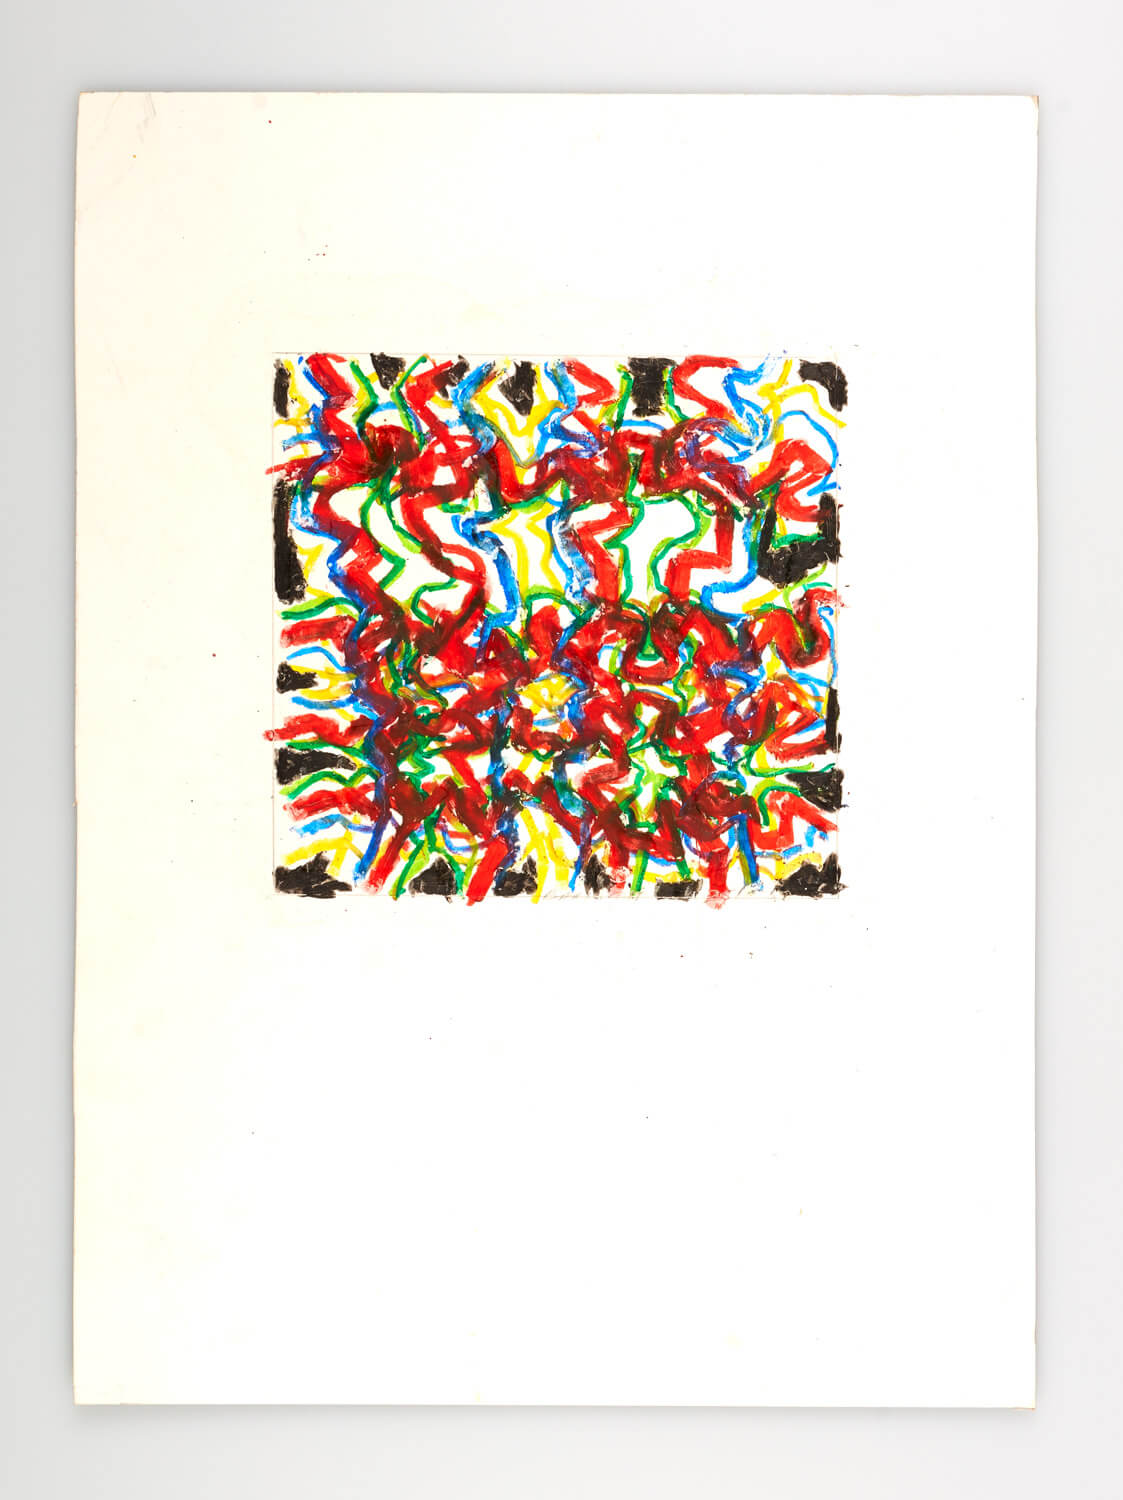 JB126 - Abstract, Black, Blue, Red, green - 2000 - 21 x 22 cm - Conte on card